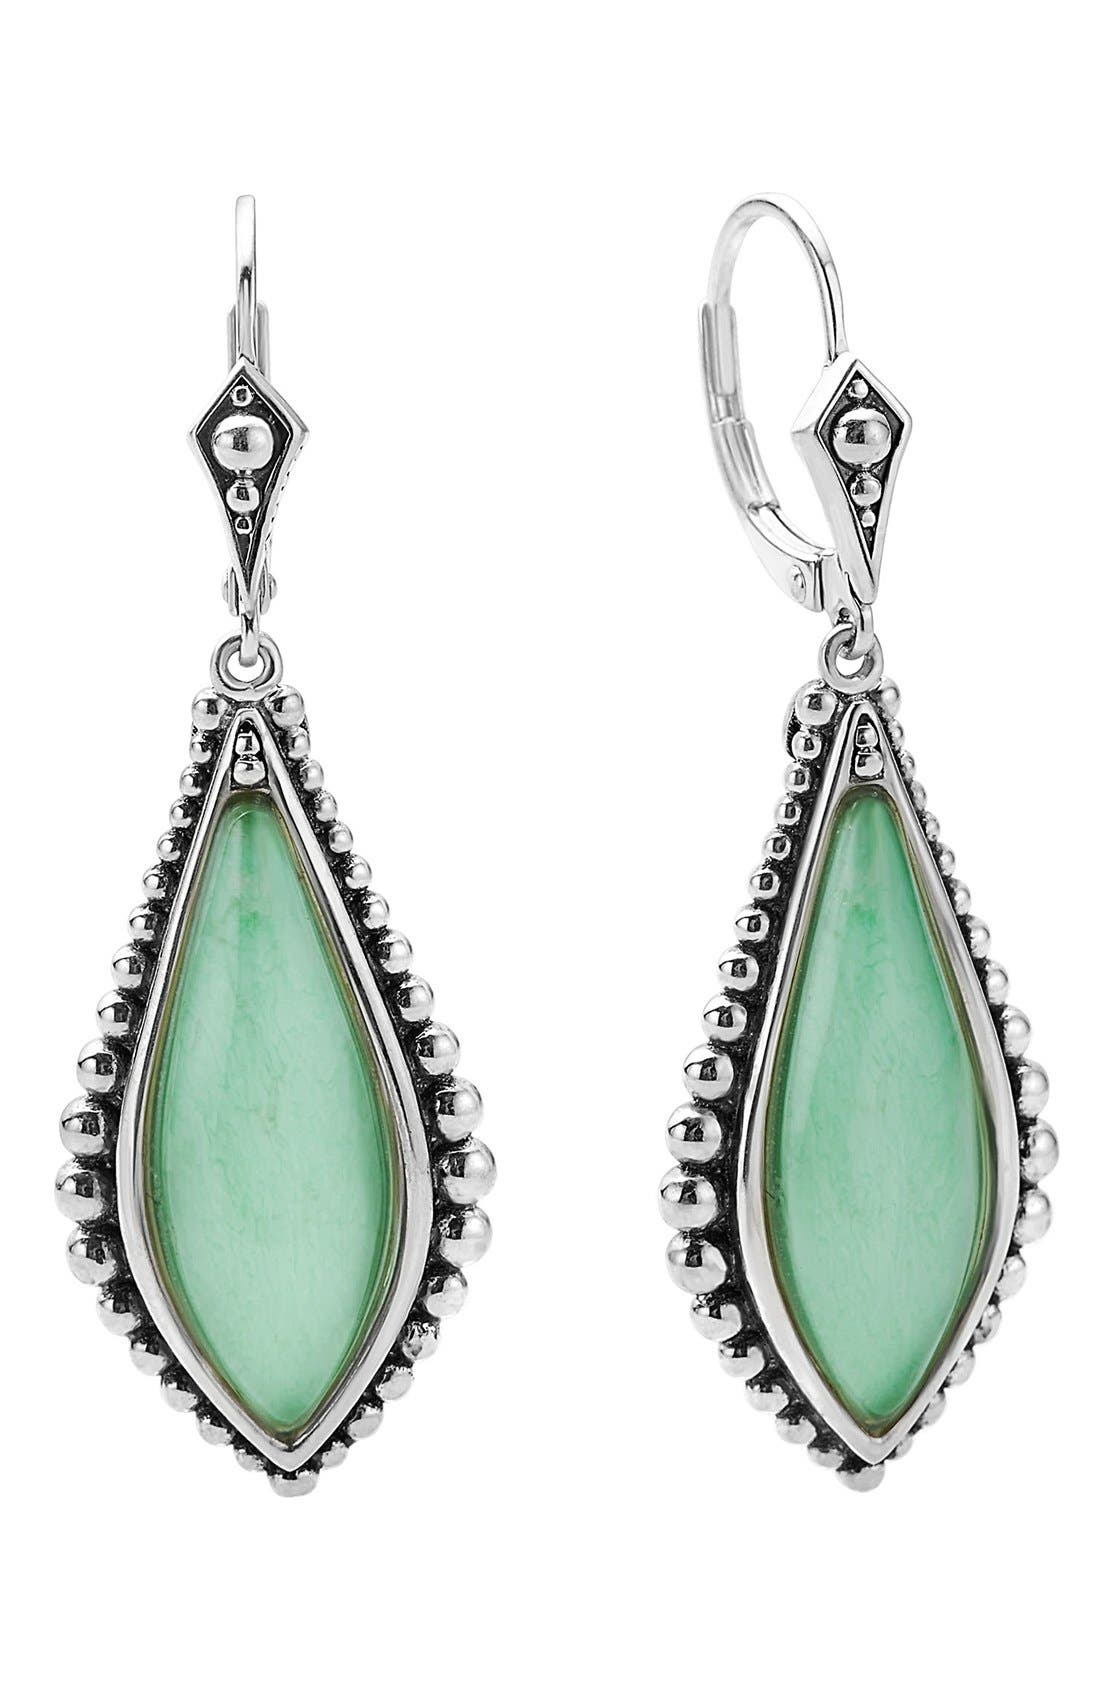 'Contessa' Semiprecious Stone Drop Earrings,                         Main,                         color, Variscite